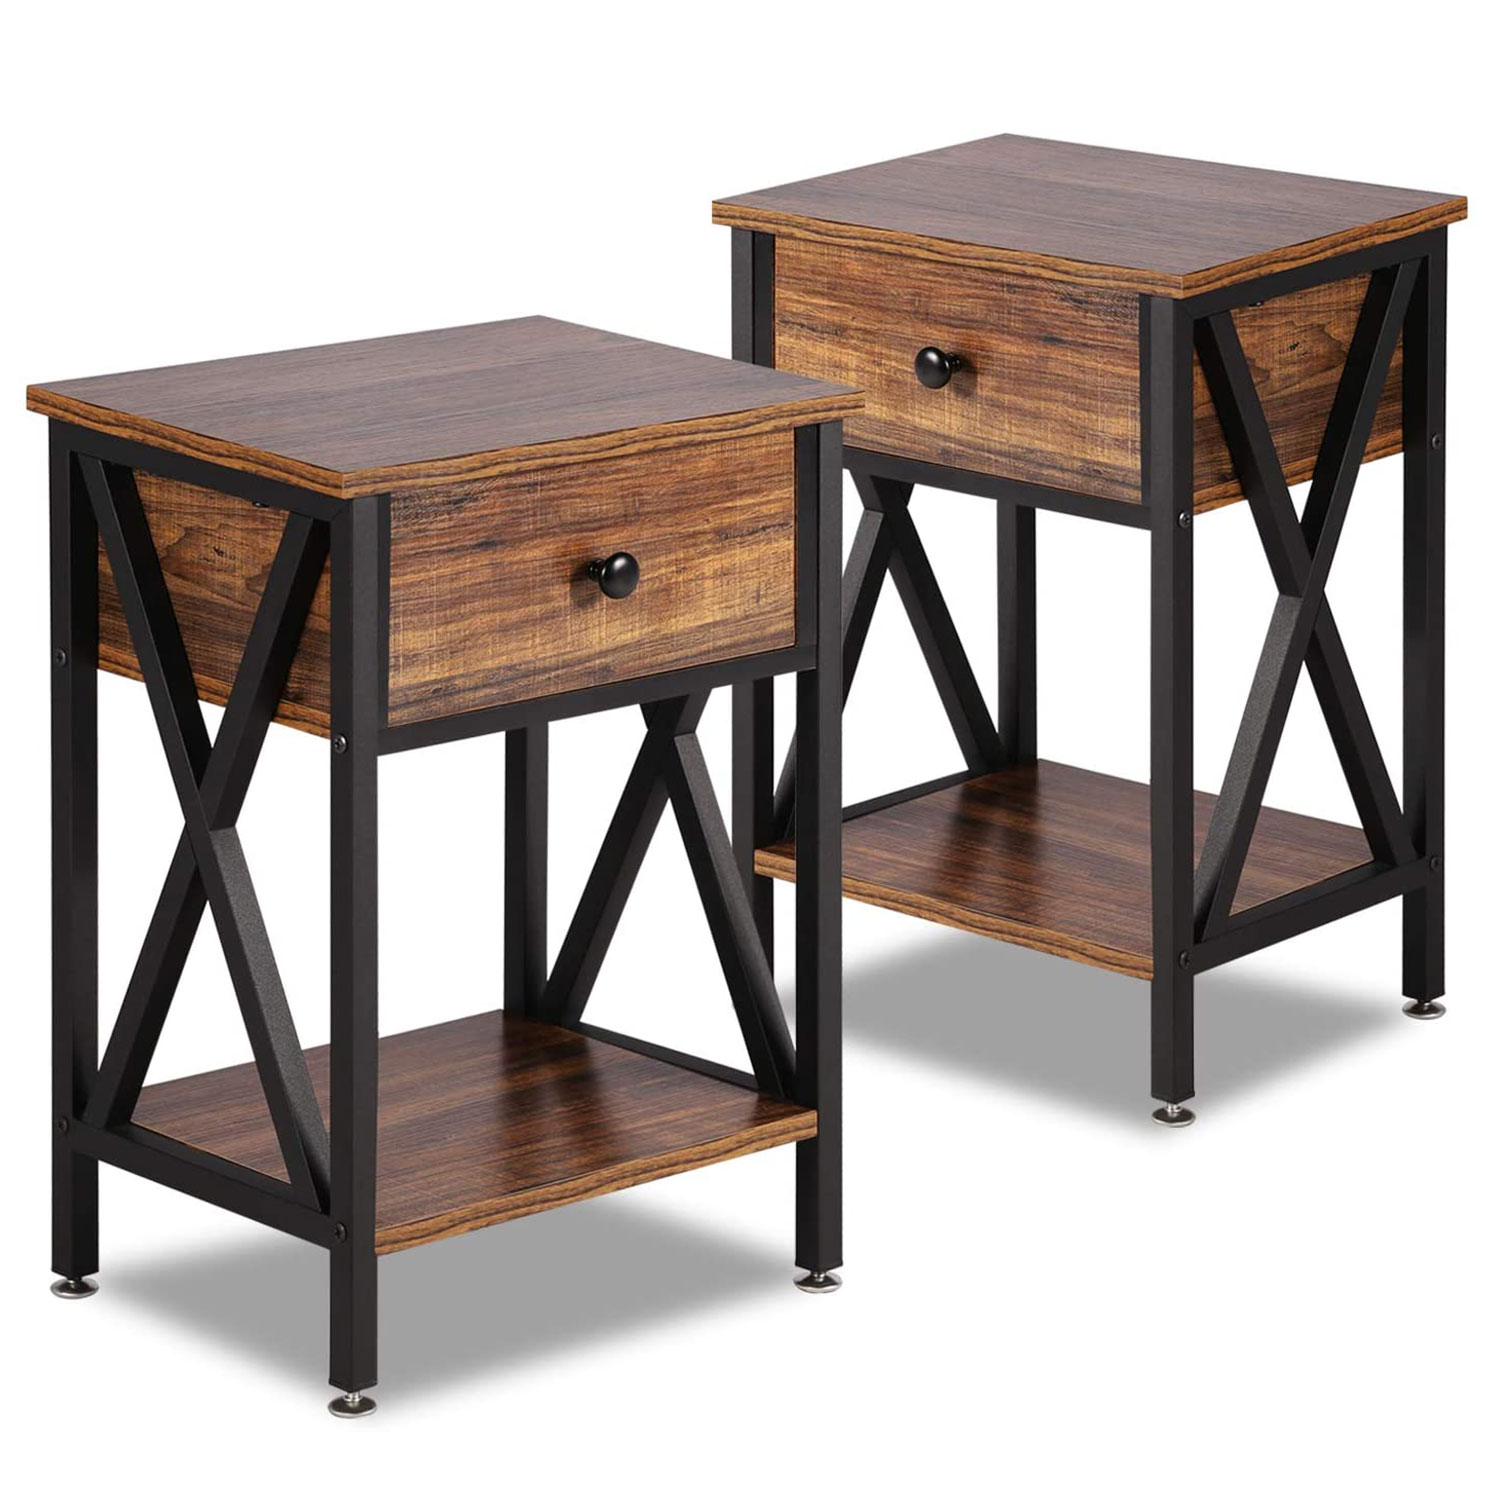 End Tables with Drawer Cabine